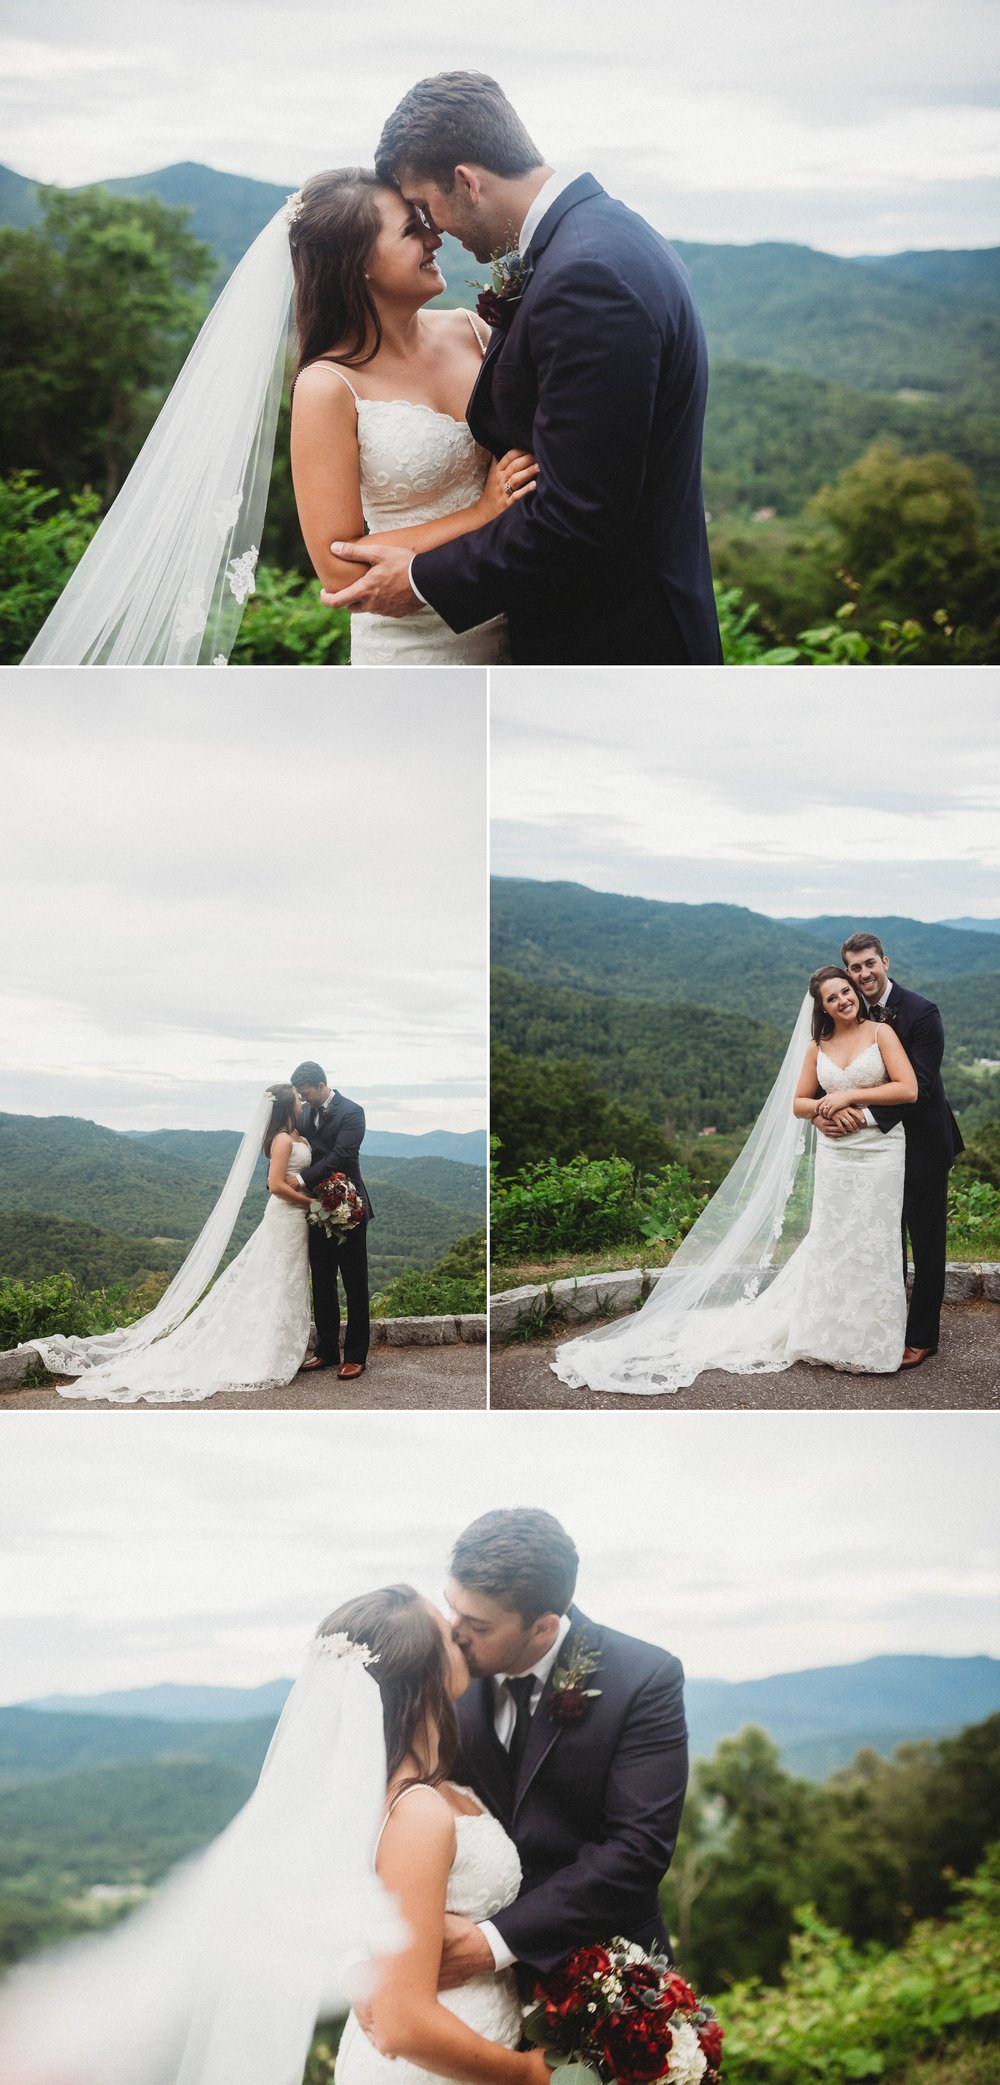 Portraits of Bride and Groom Megan + Jon - Run away Elopement at the Blue Ridge Park Way in Asheville, North Carolina